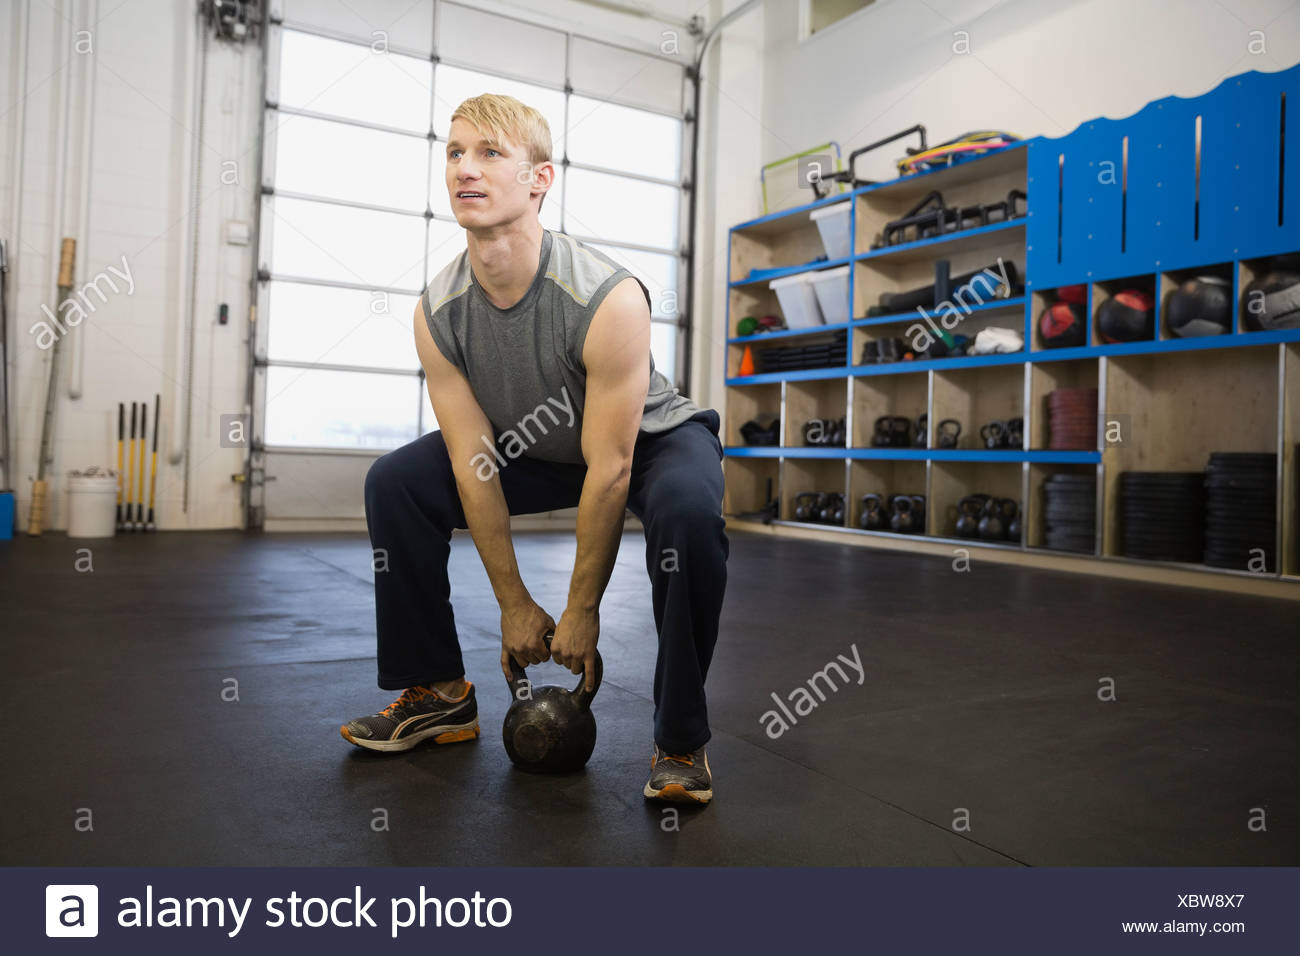 Man exercising with kettlebells - Stock Image